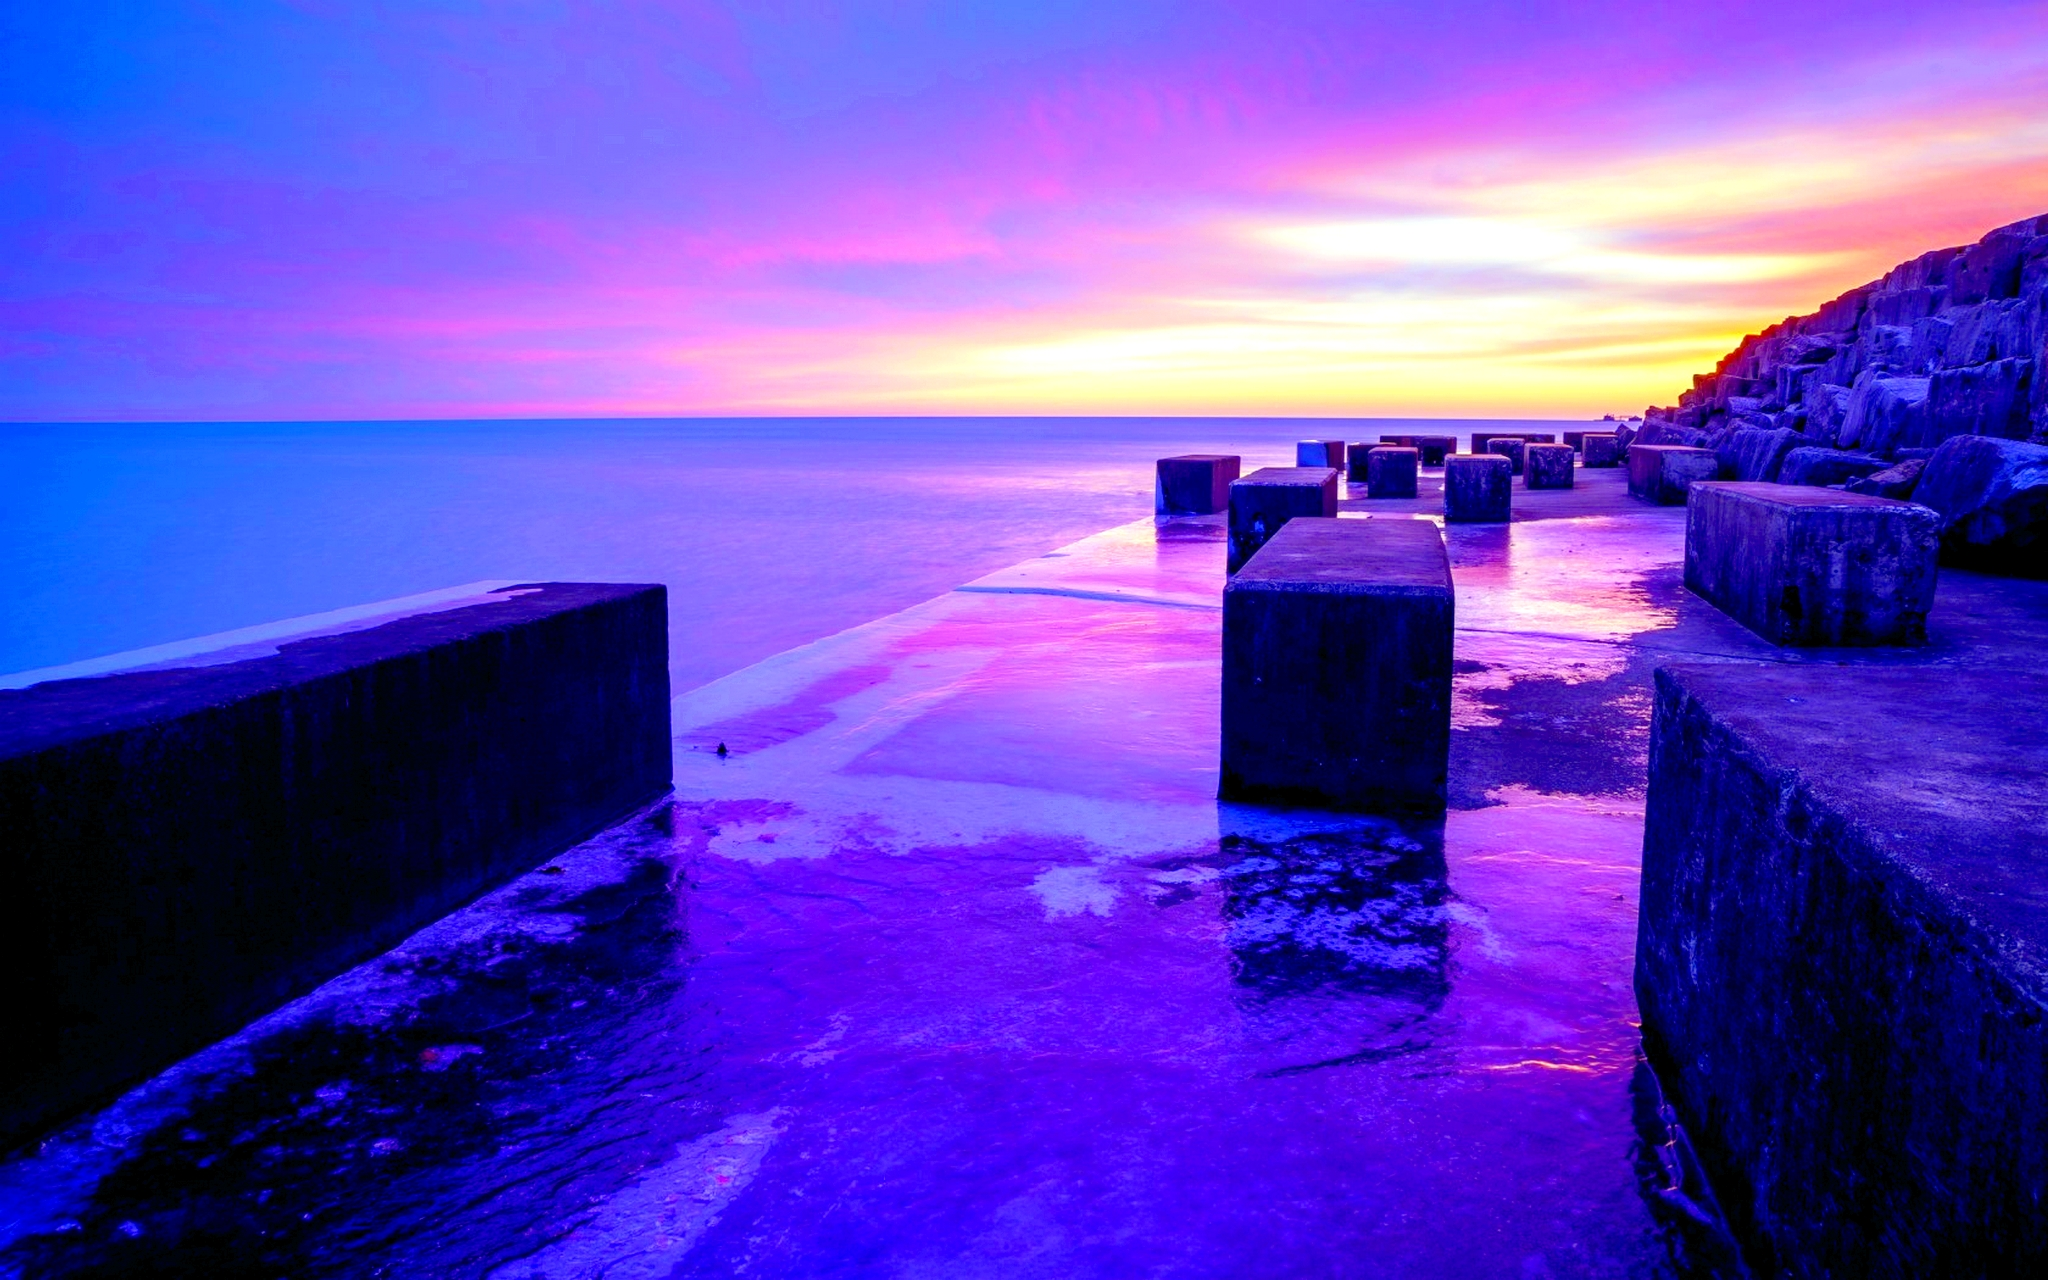 Purple Sunset Wallpaper 23192 2048x1280 px ~ HDWallSource.com